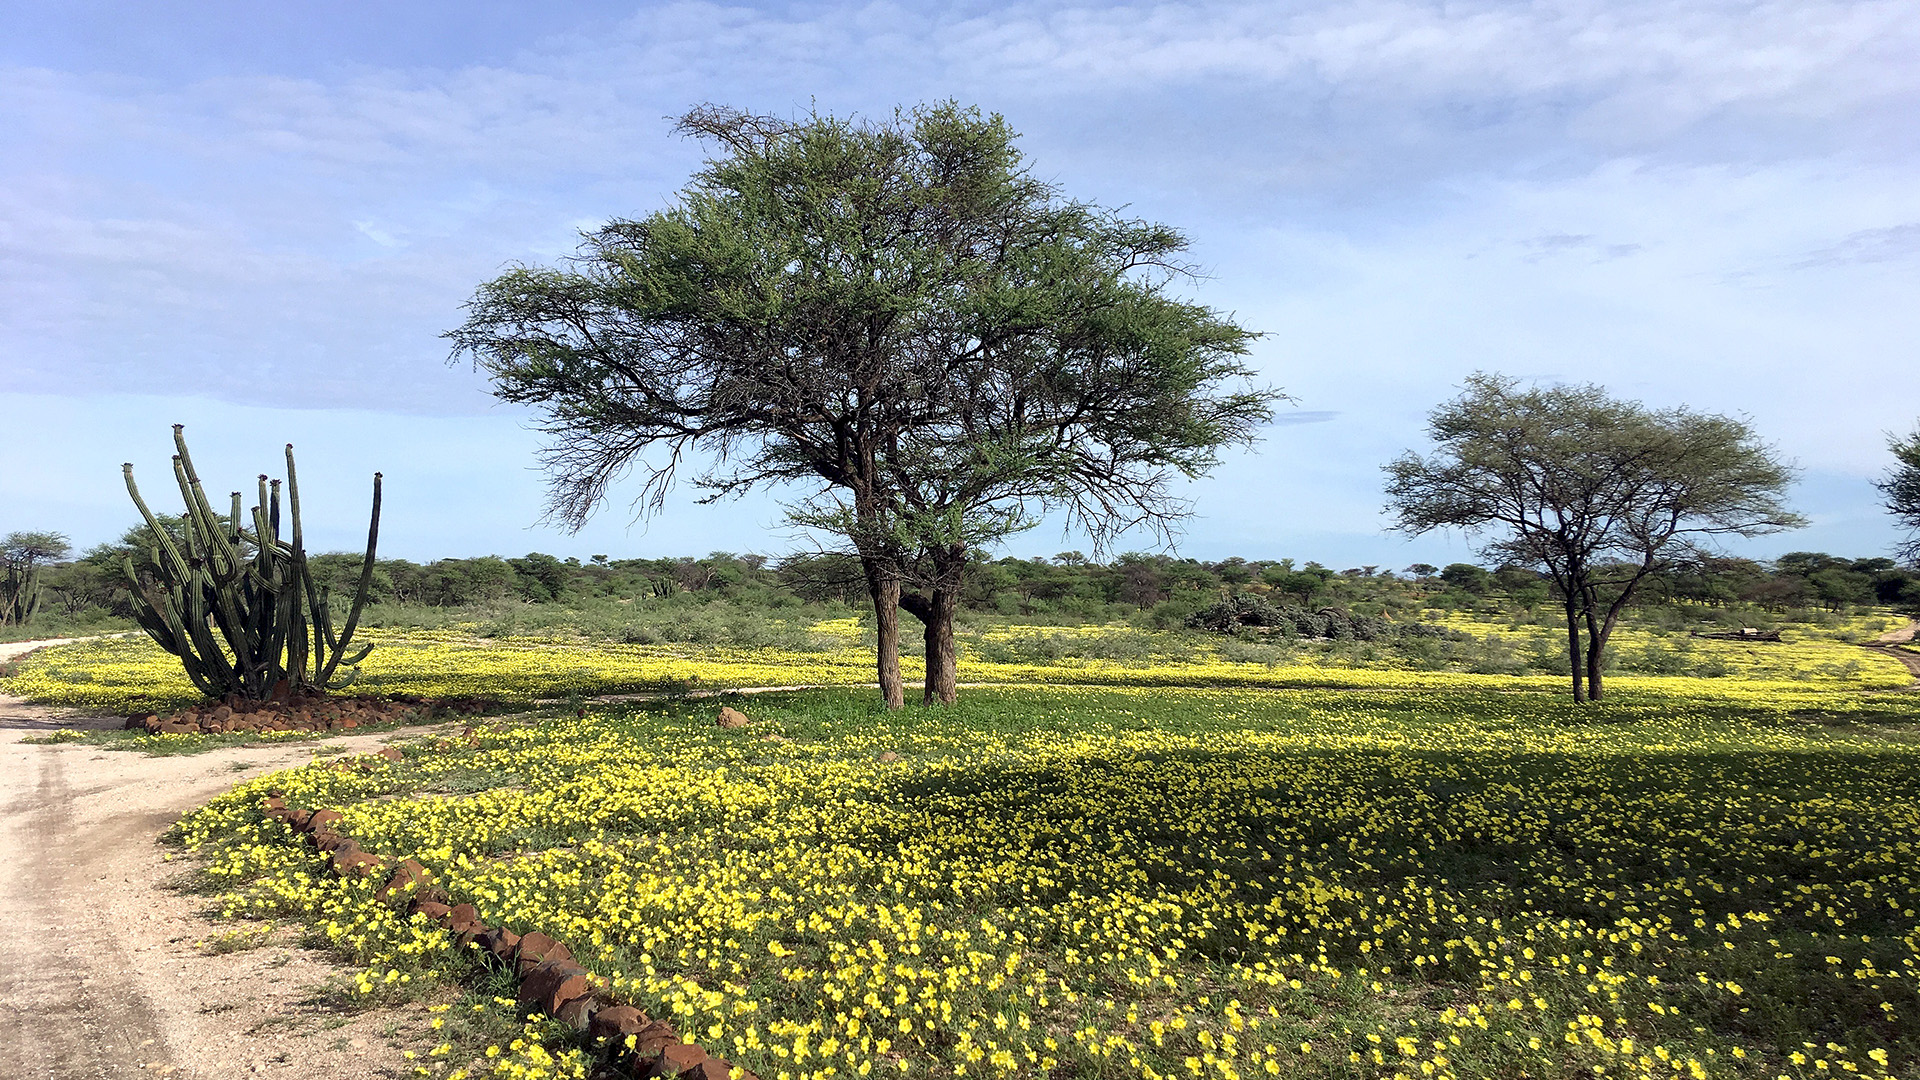 After many years of extreme drought, Namibia finally had a real rainy season again in 2020